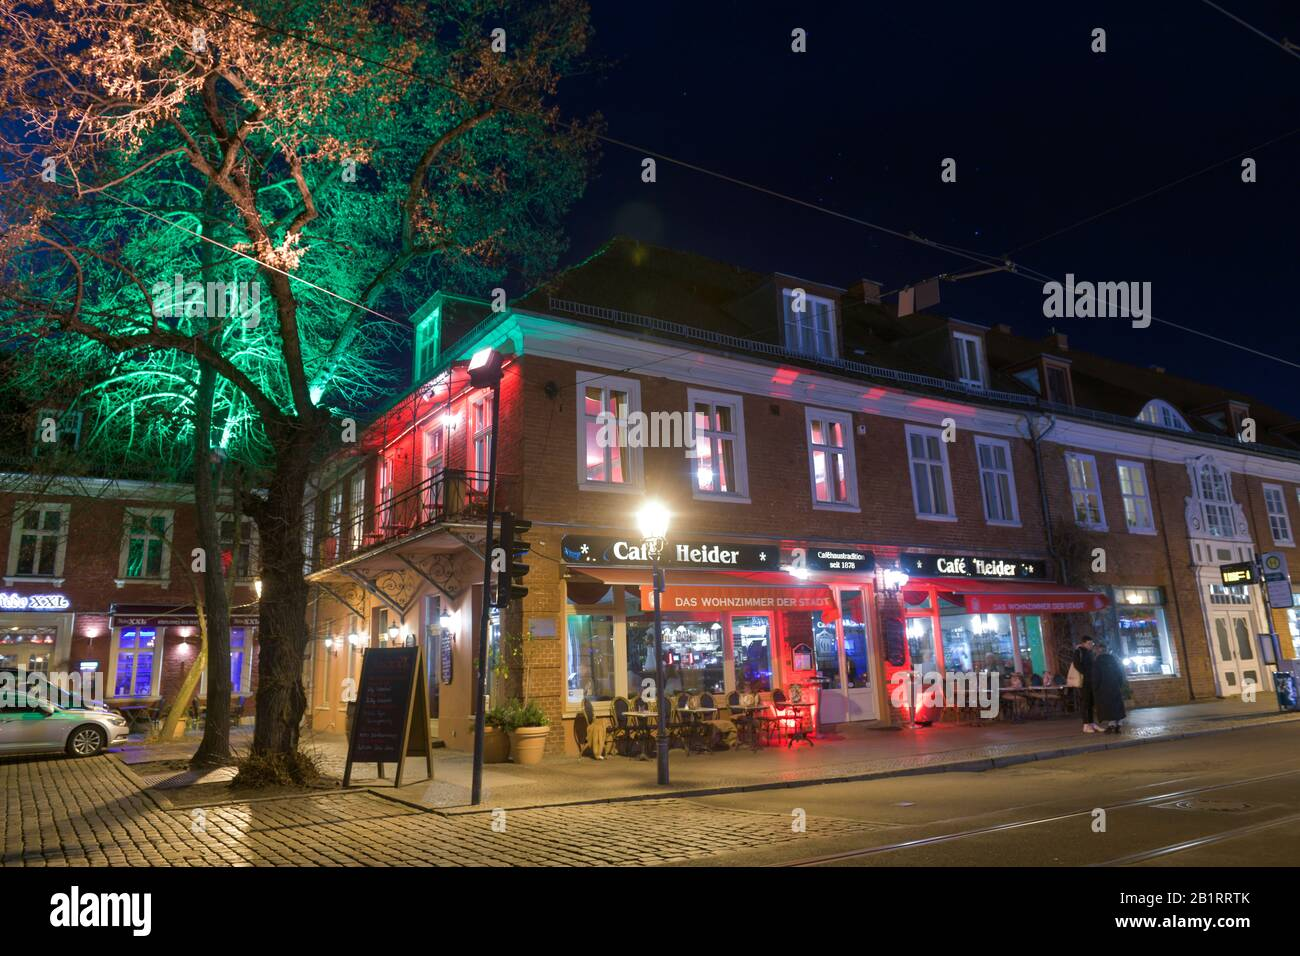 Cafe Heider High Resolution Stock Photography And Images Alamy - Wohnzimmer Potsdam